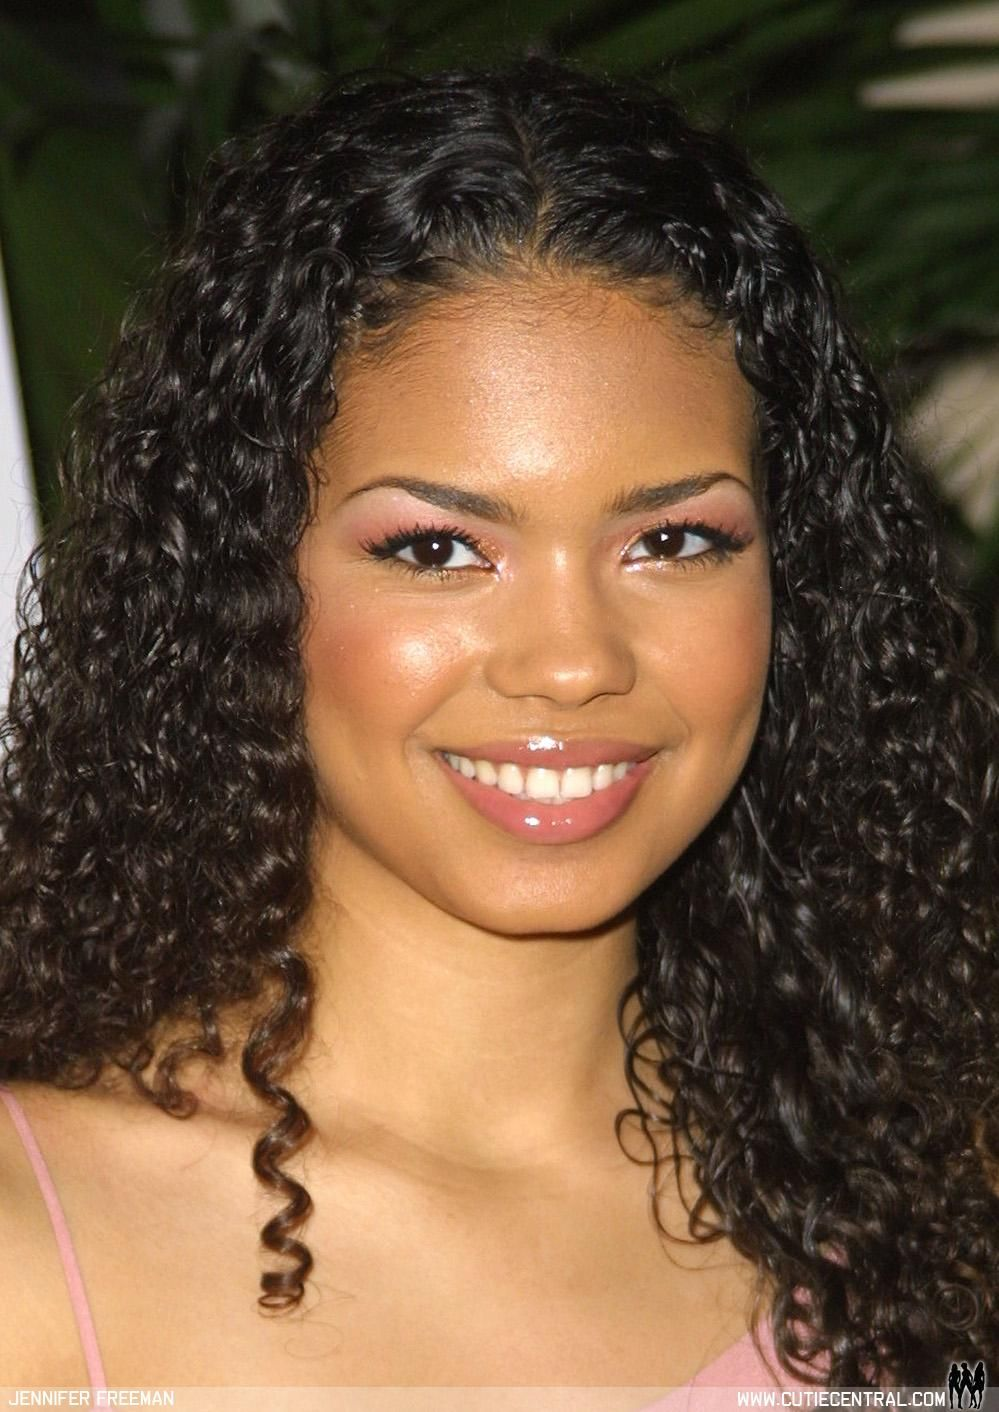 Watch Jennifer Freeman video